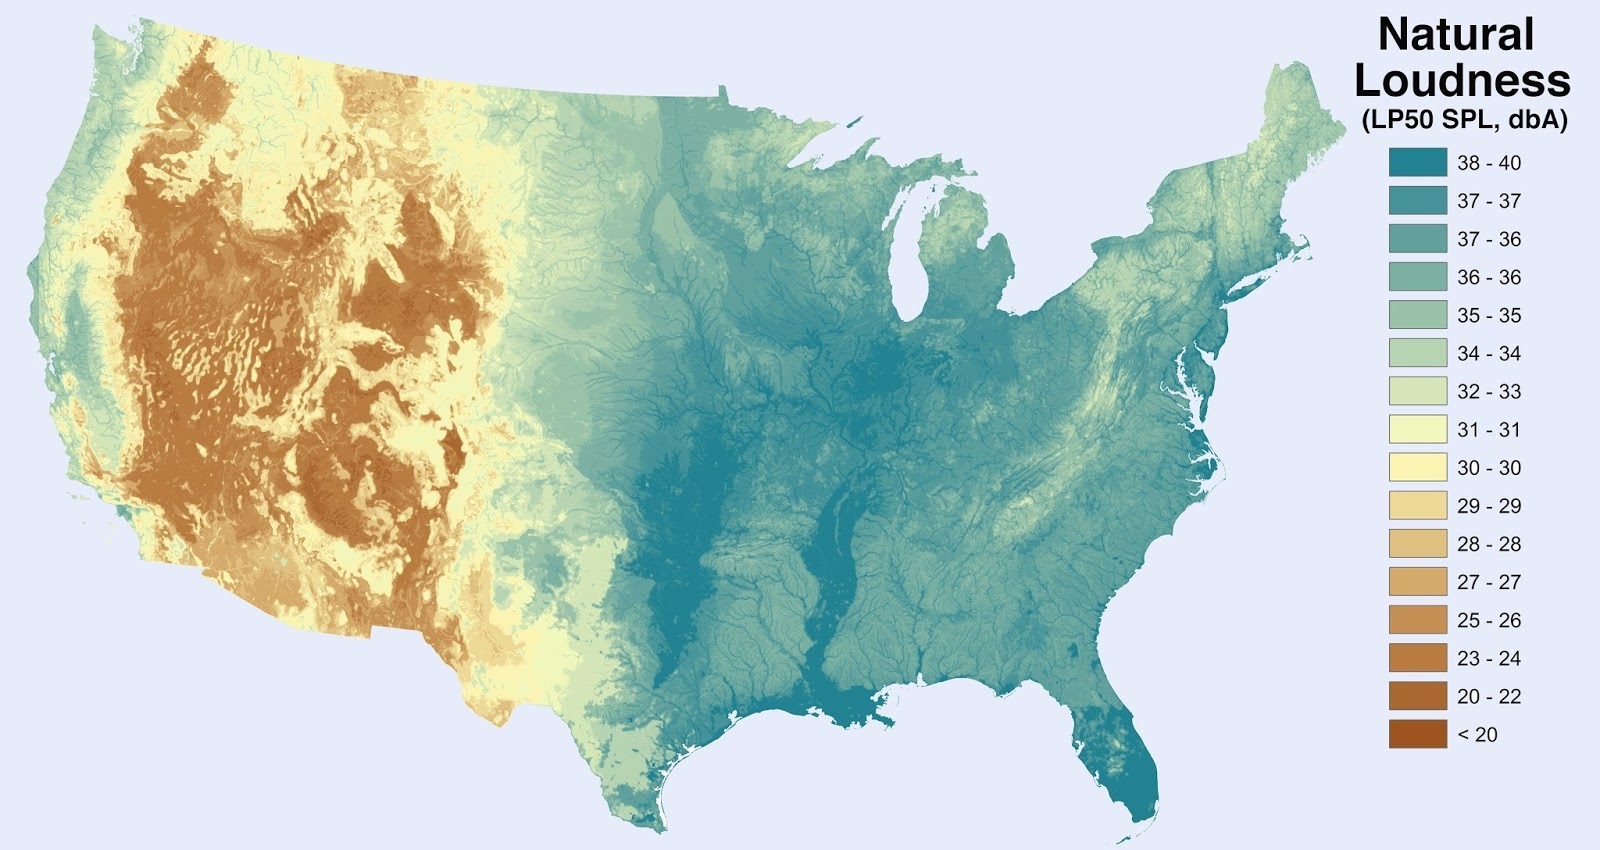 Noise level from natural sources in the U.S. (excluding humans and human activity)